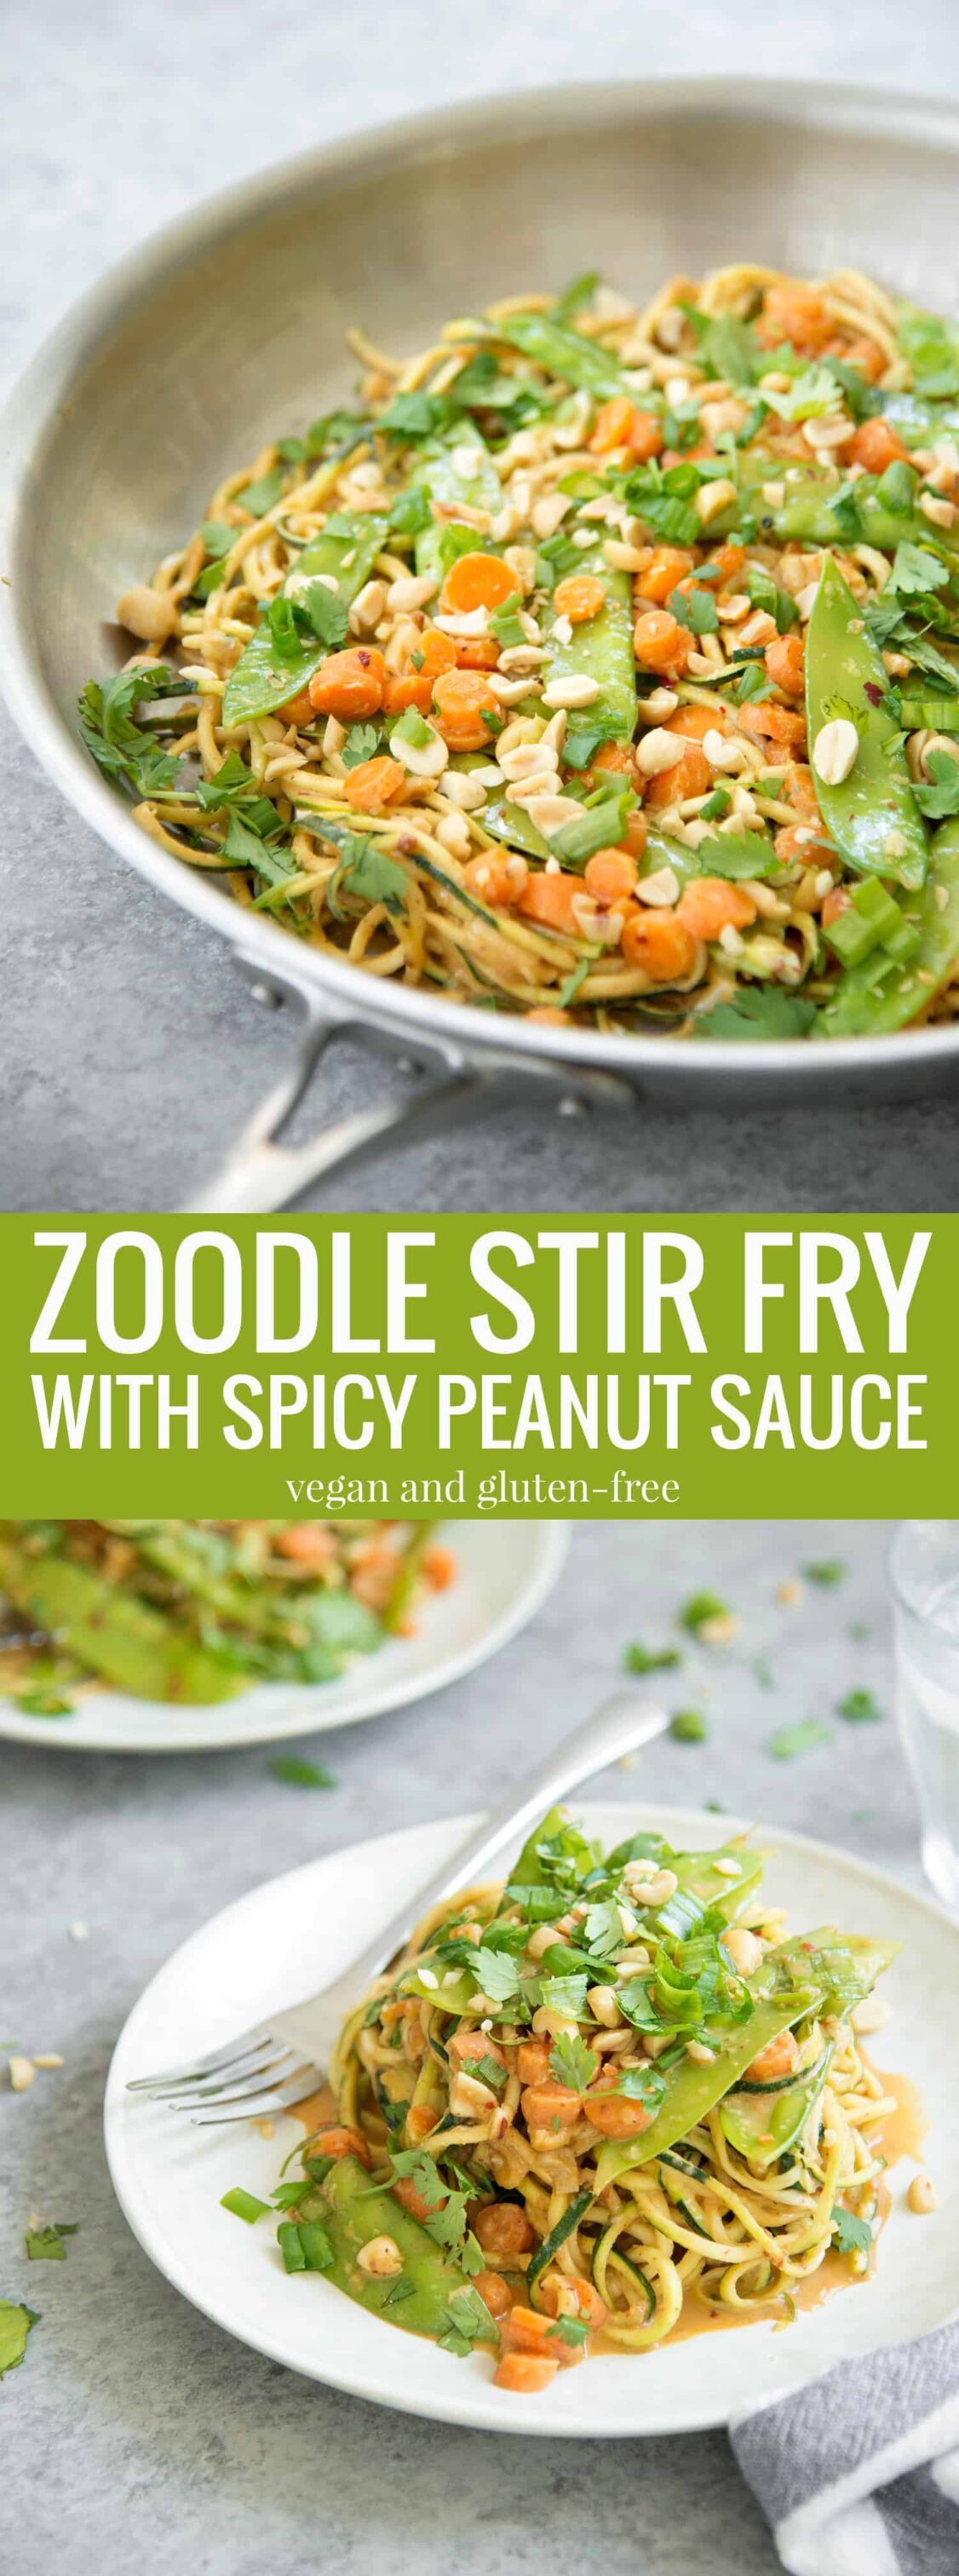 Zoodle Stir Fry with Spicy Peanut Sauce! You've gotta try this one-skillet meal, vegan and gluten-free. Spiralized zucchini, snow peas, carrots and herbs in a spicy peanut sauce. Enjoy as is or add your favorite protein. | www.delishknowledge.com